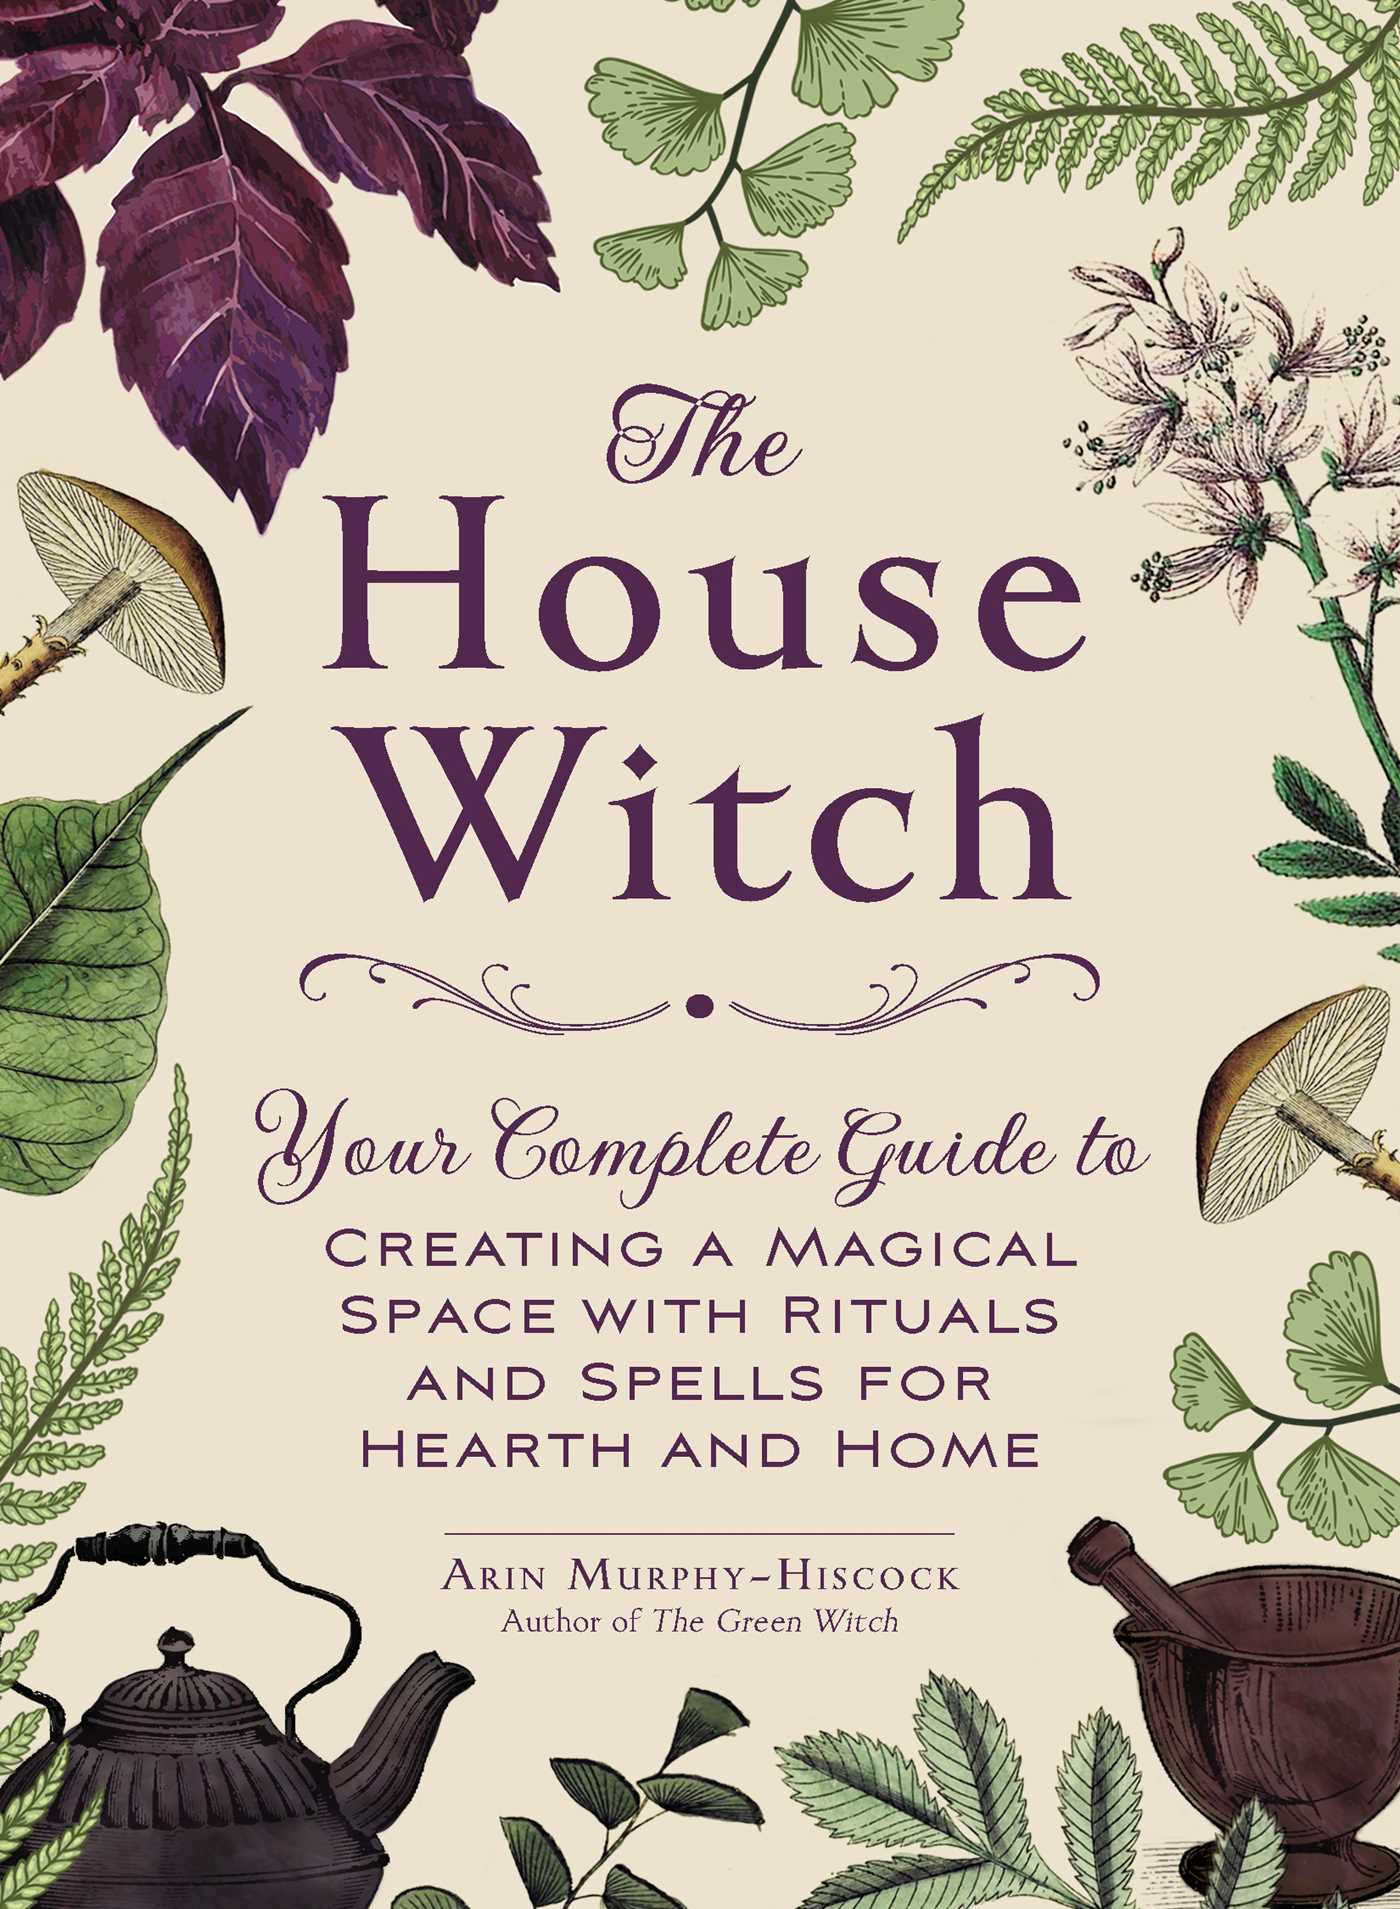 The cover of the book The House Witch